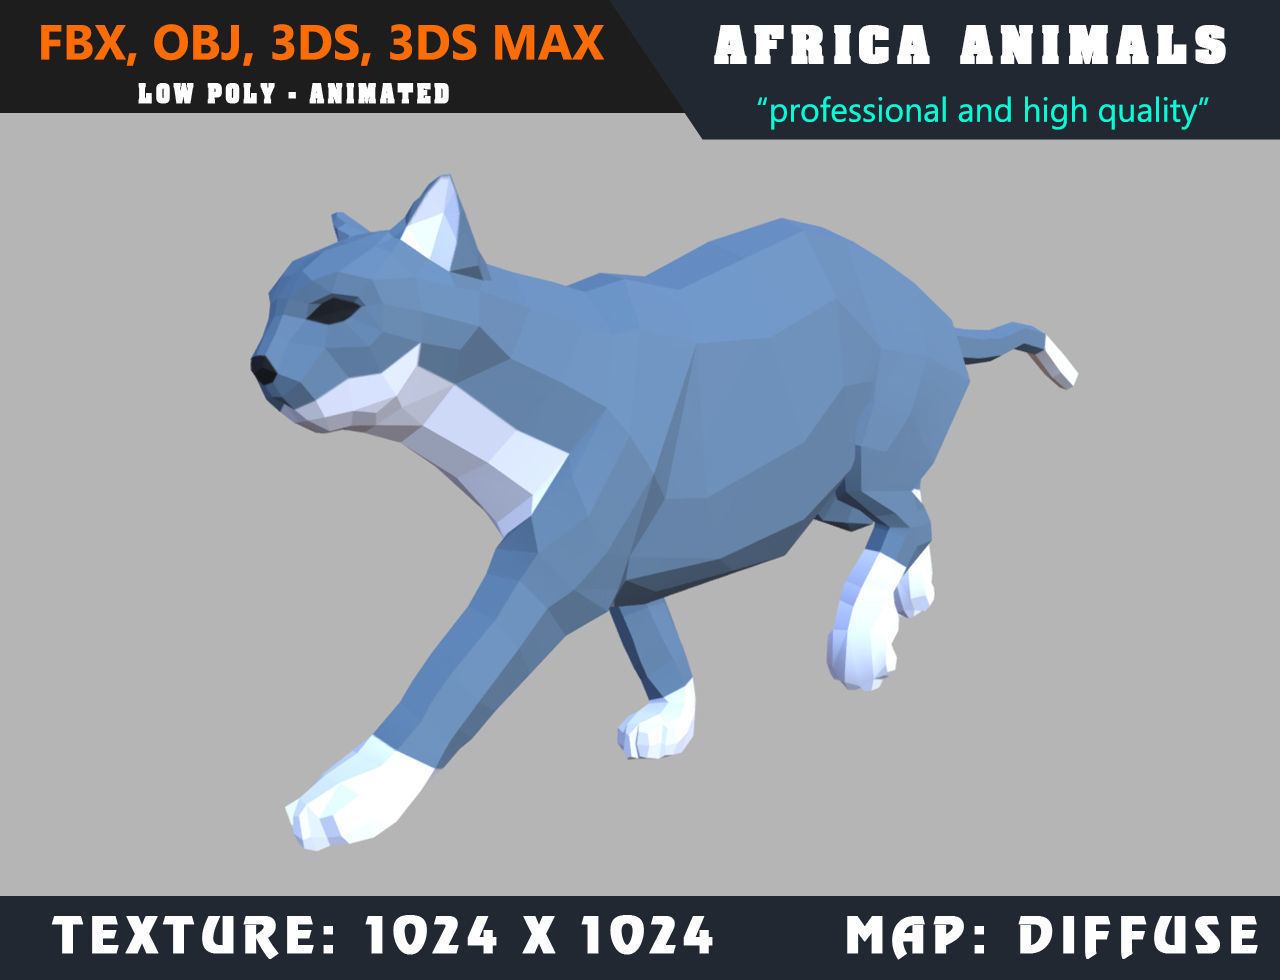 Low Poly Cat Cartoon 3D Model Animated - Game Ready